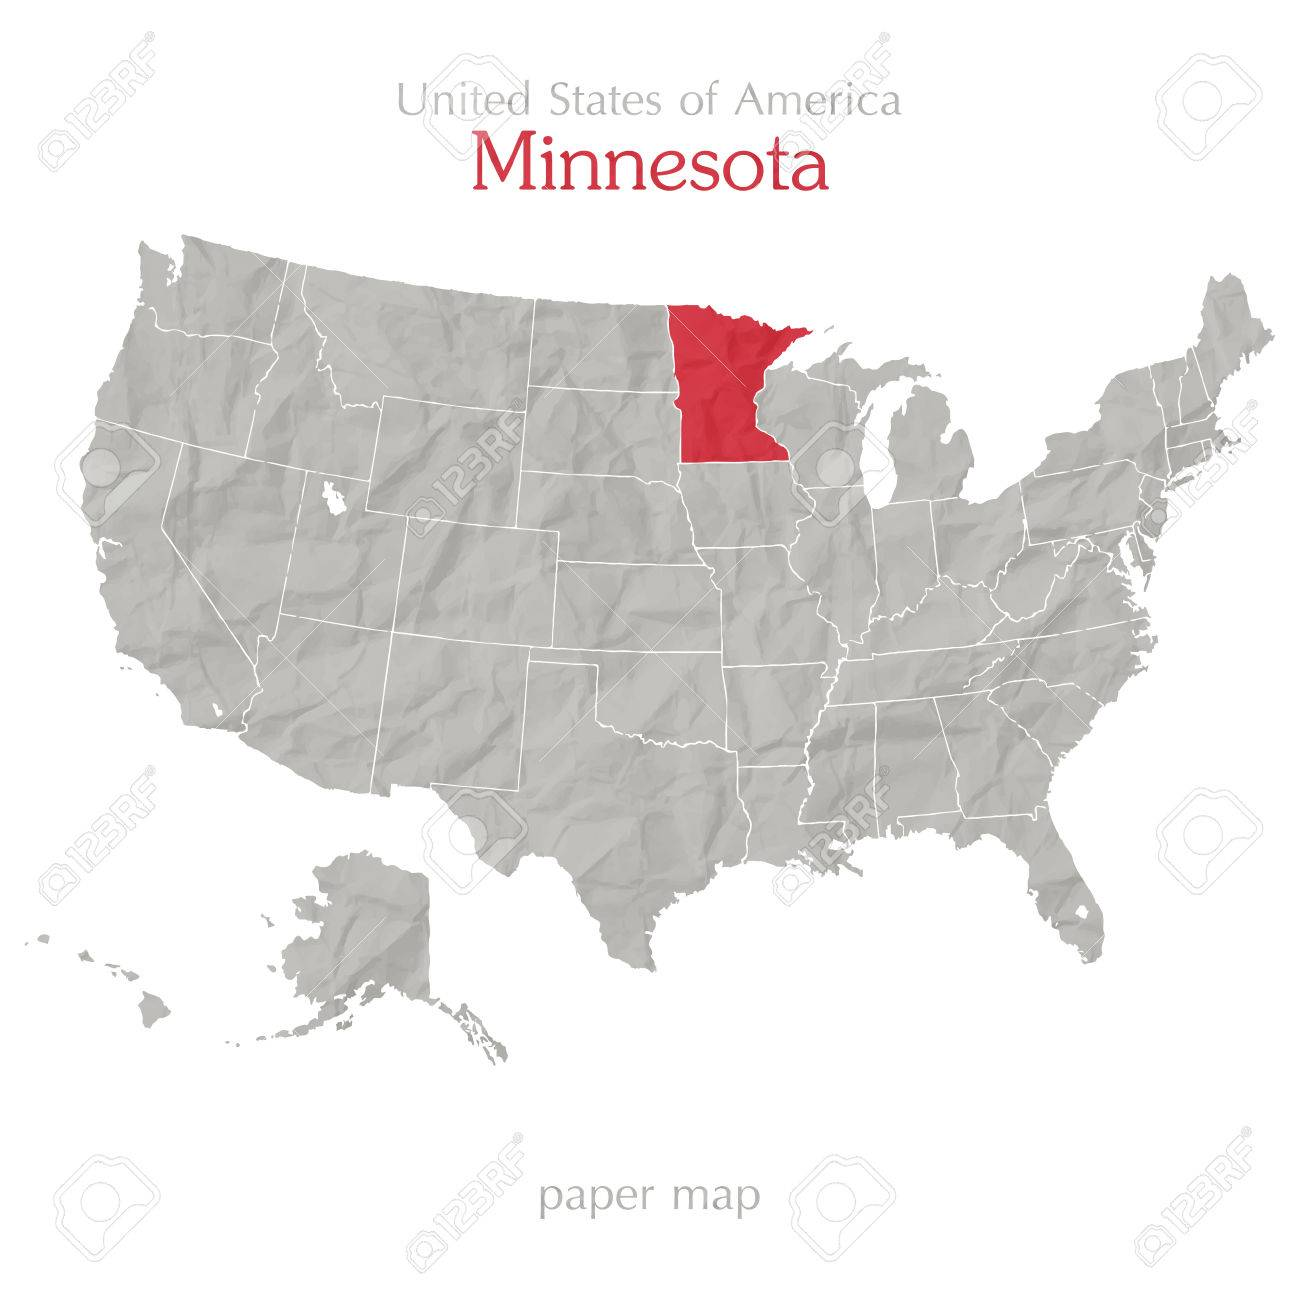 United States Of America Map And Minnesota Territory On Paper ...